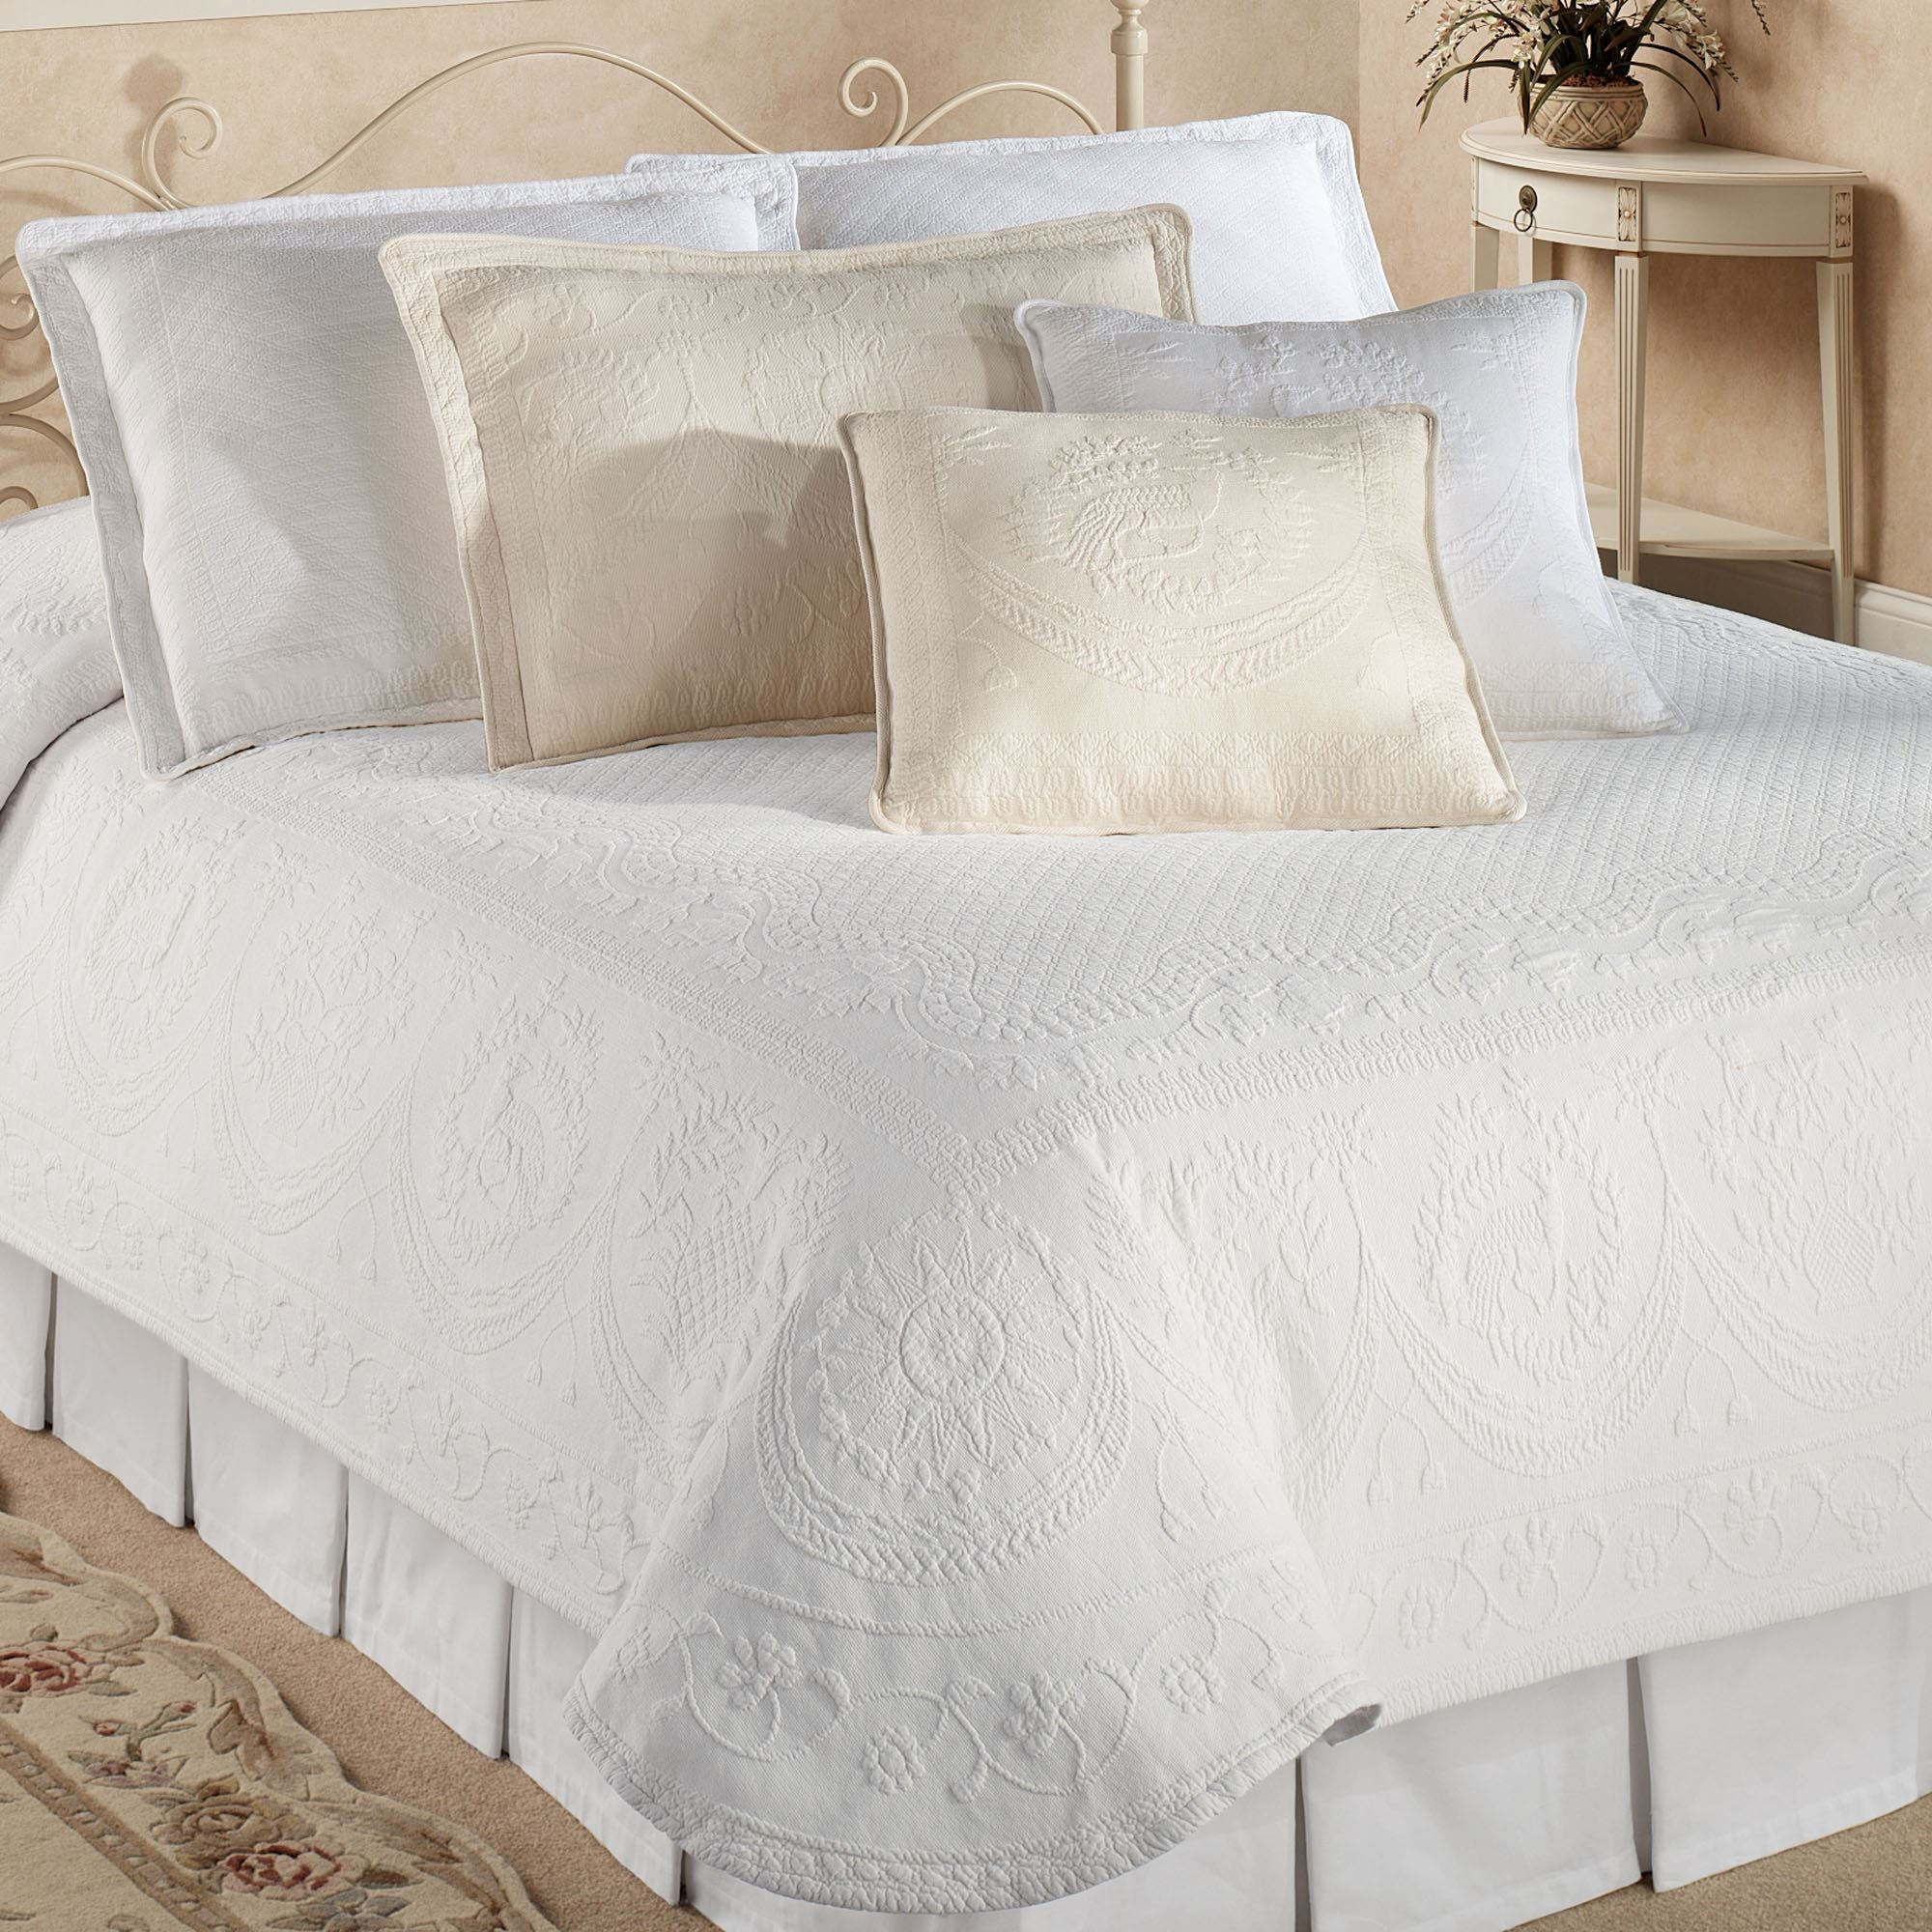 The Purists Jasmine Matelasse Duvet Cover Bed Pillows Decorative